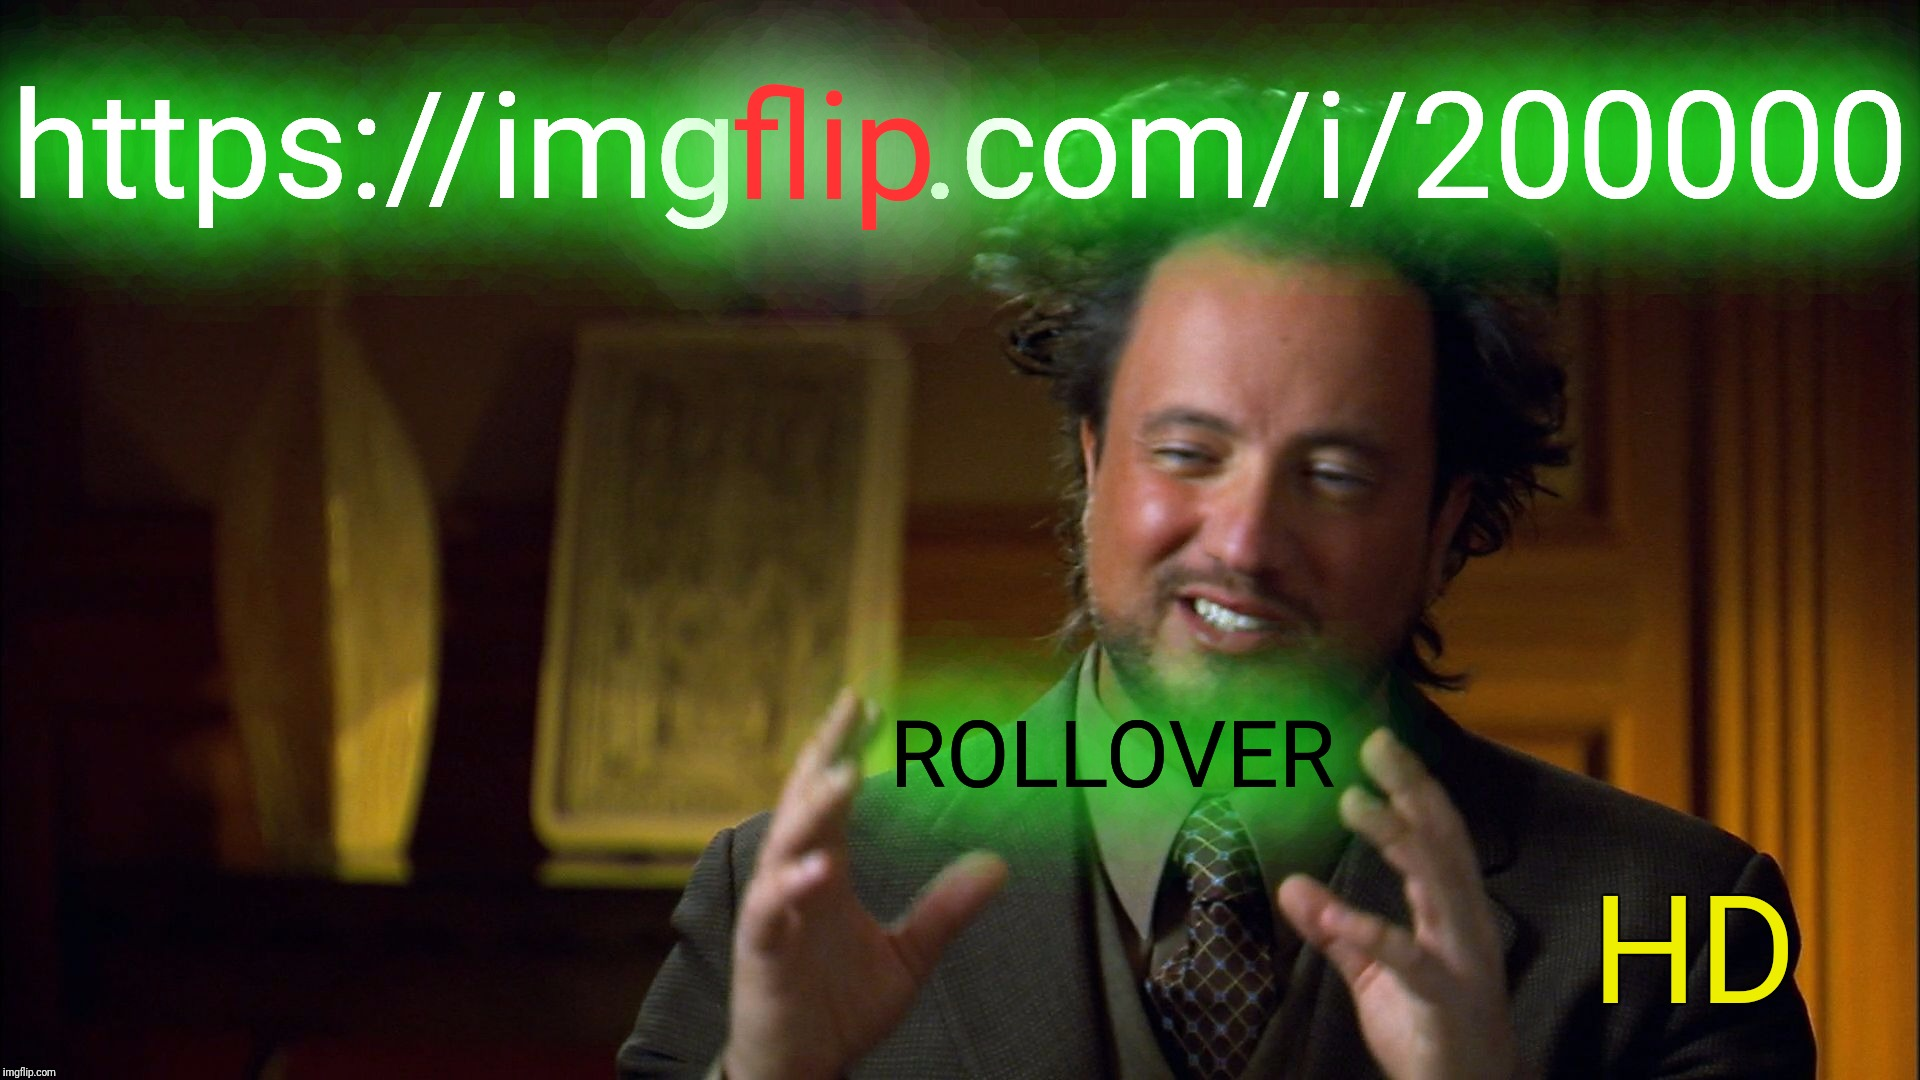 Close, but no cigar :) | HD ROLLOVER https://img     .com/i/200000 flip | image tagged in ancient aliens clowns,imgflip,rollover,hd memes,giorgio tsoukalos,ancient aliens | made w/ Imgflip meme maker